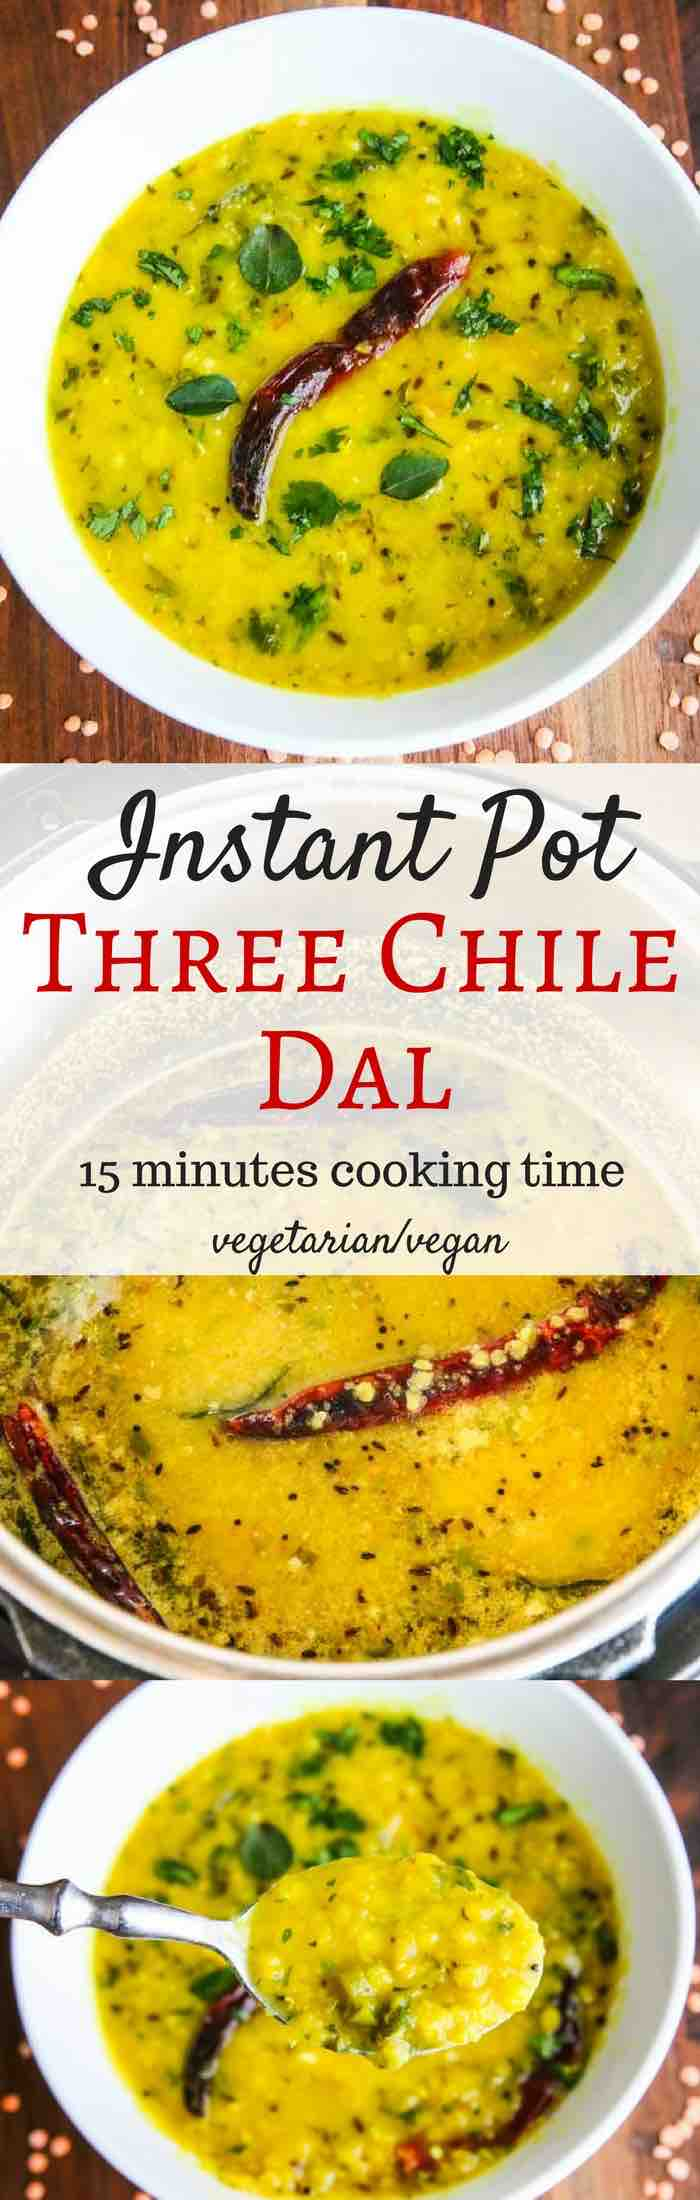 Instant Pot Three Chile Dal (vegan/vegetarian) - fragrant and flavorful -spices include cumin, black mustard seeds, cilantro, garlic, green and red chiles, and cayenne